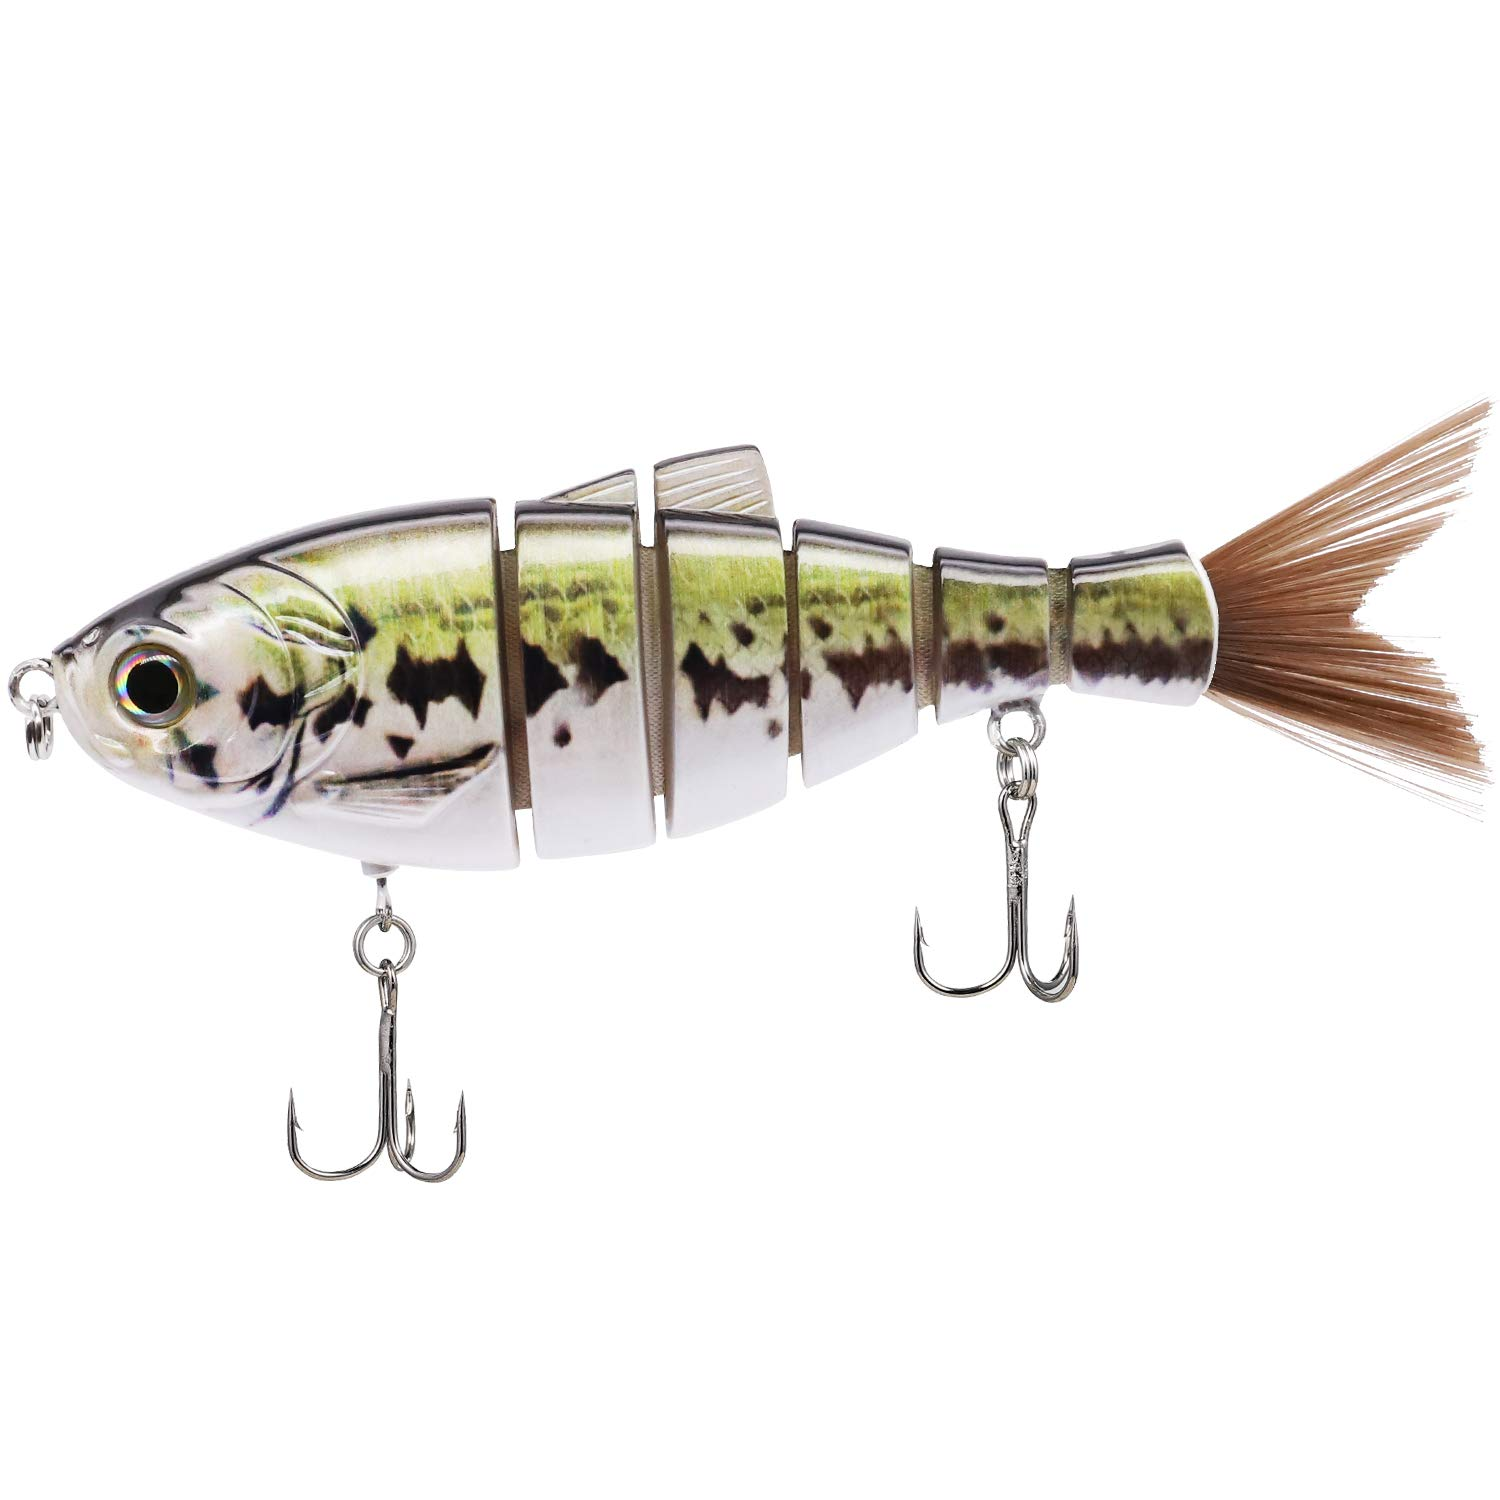 TRUSCEND Fishing Lures 6'' ~ 7'' Saltwater Freshwater Heavy-Duty Metal Jointed Swimbaits Glidebaits Hard Lures for Bass Catfish Pike Muskie Large Fish Lures Fishing Tackle Kits Lifelike (J6D05) by TRUSCEND